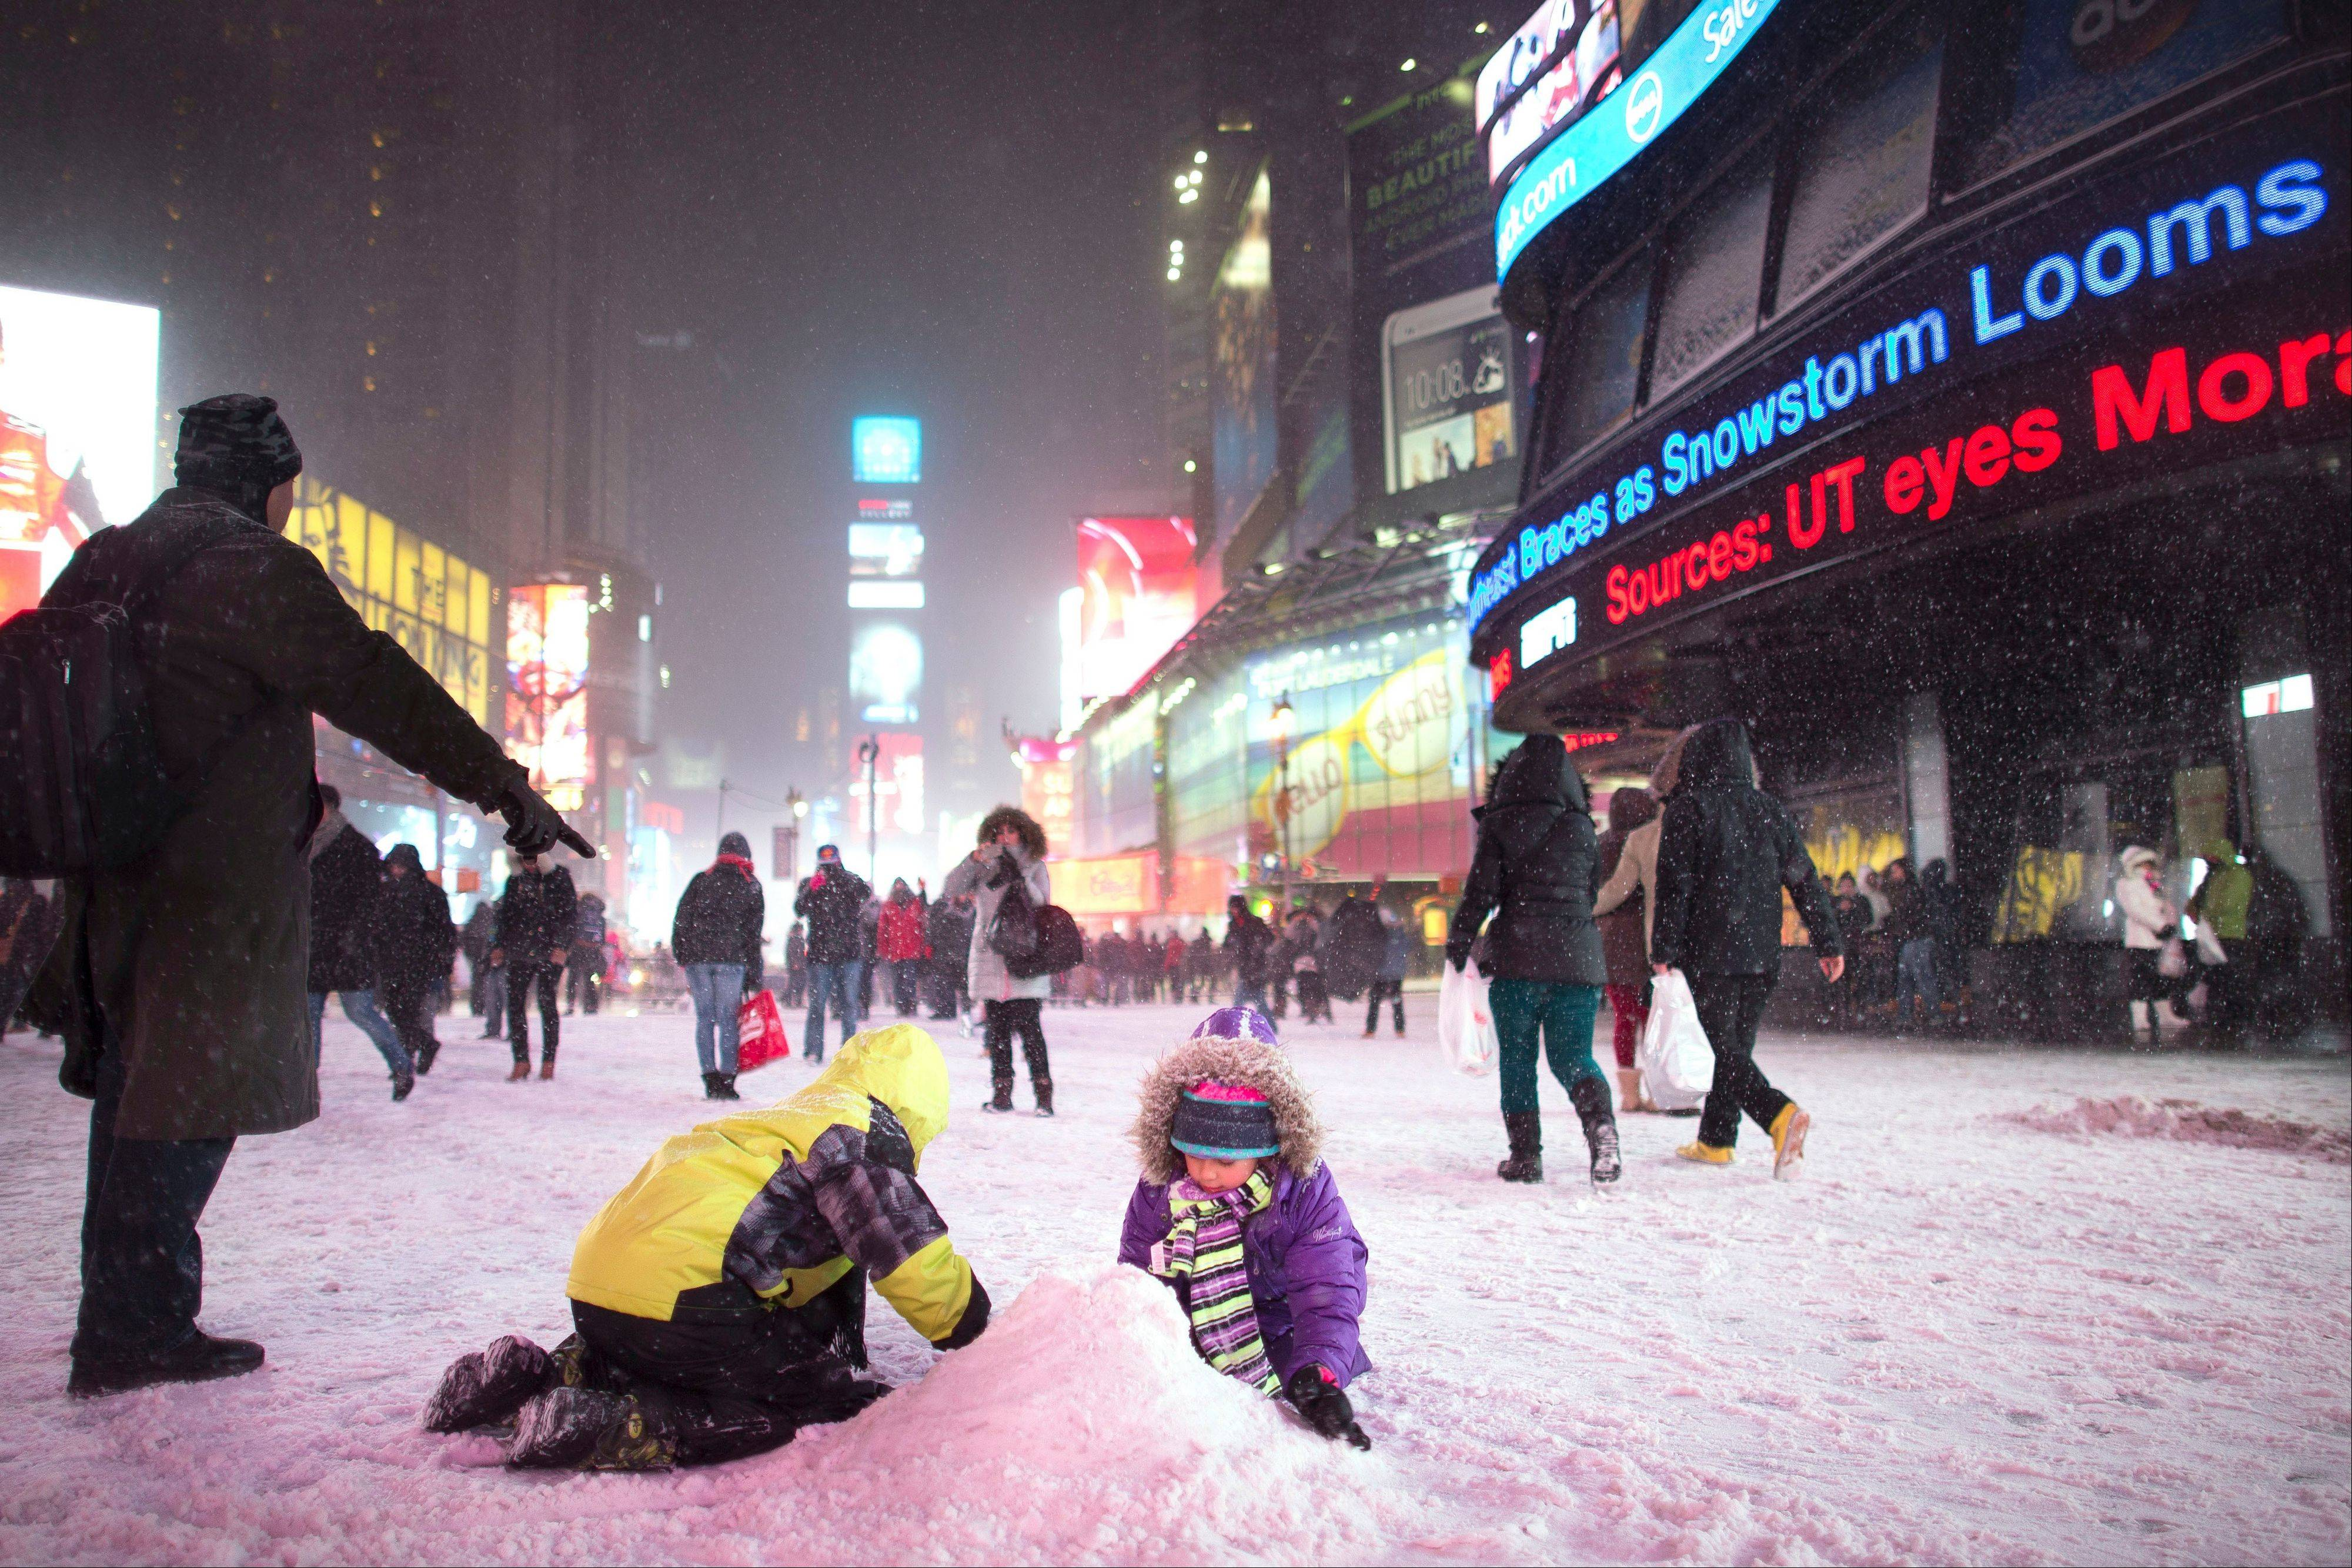 Children make a snow pile in Times Square, during a snowstorm, Thursday, Jan. 2, 2014, in New York. The storm is expected to bring snow, stiff winds and punishing cold into the Northeast.